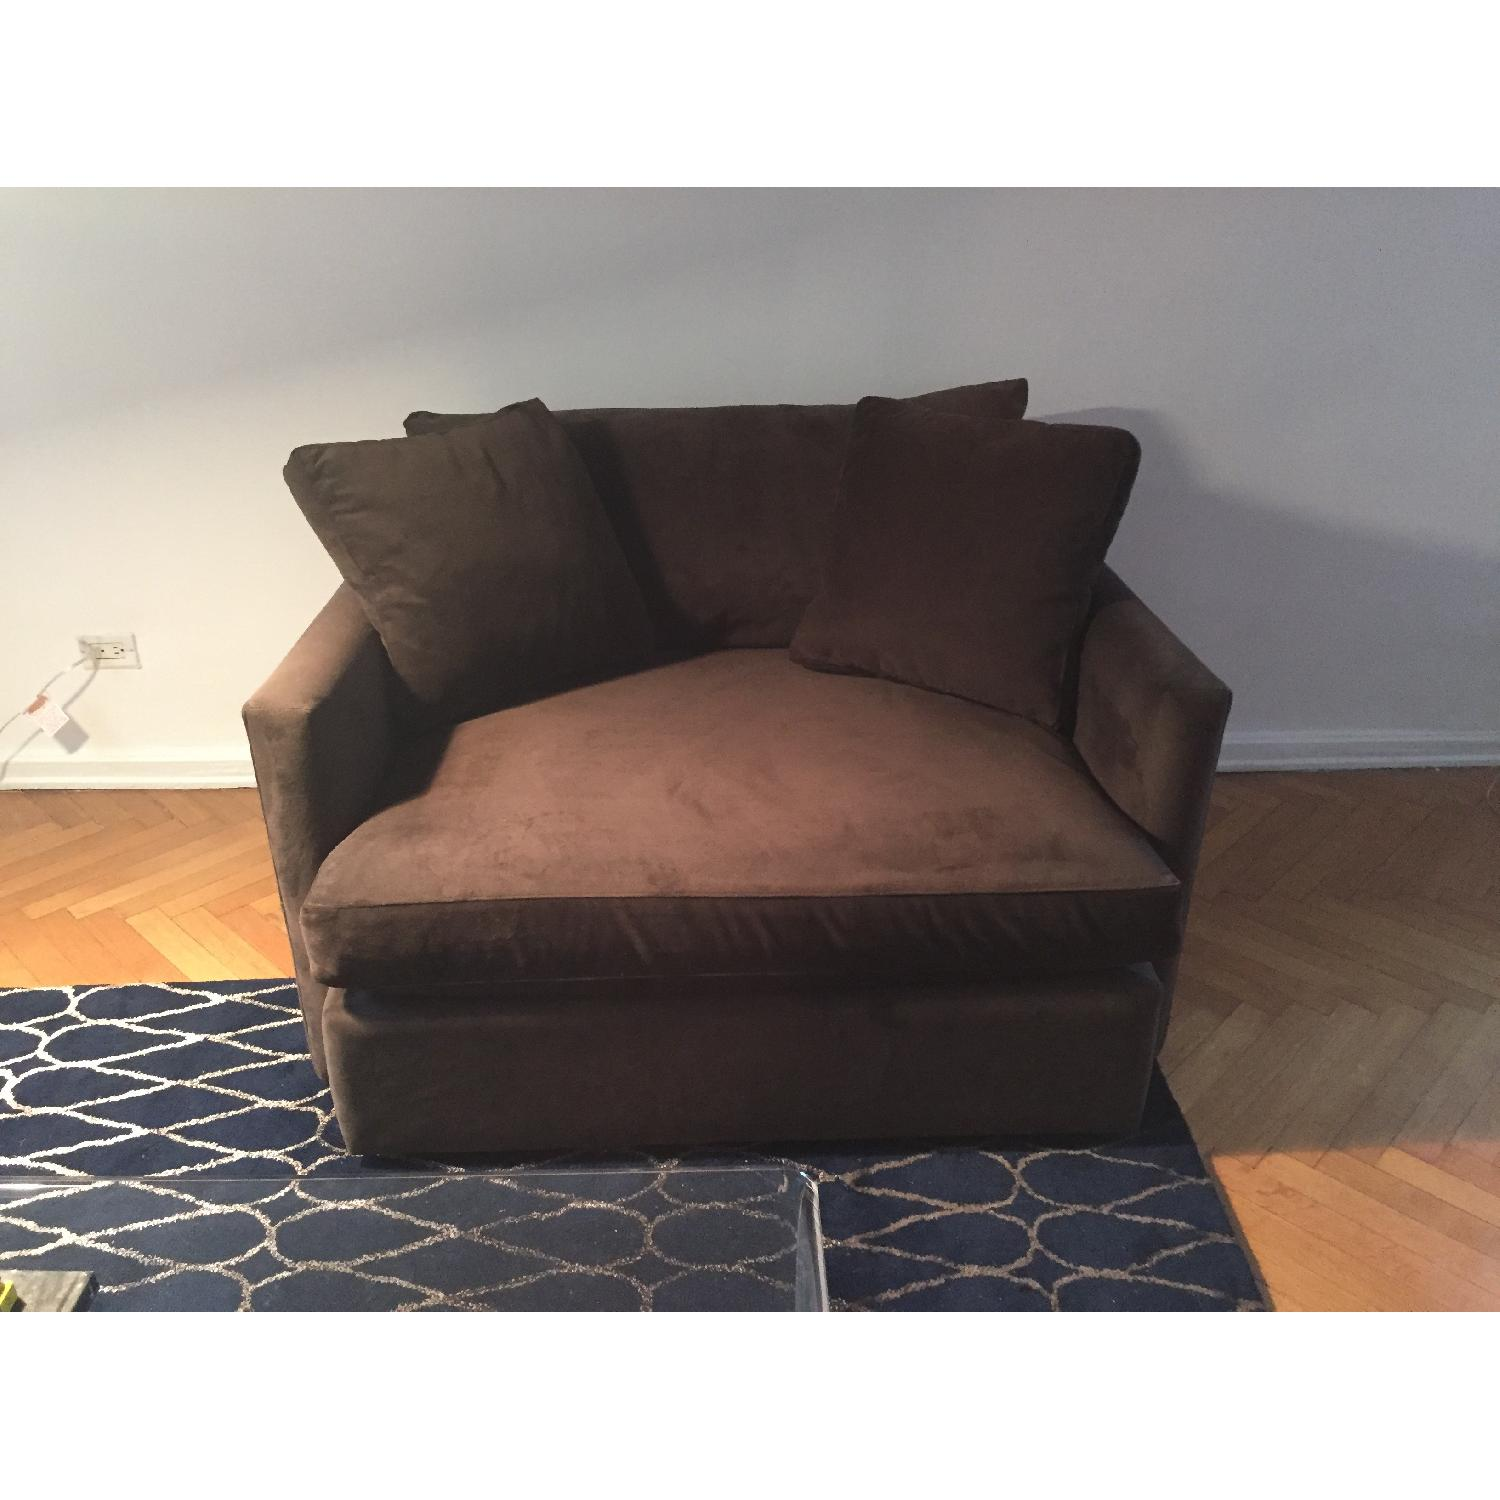 Crate & Barrel Lounge Chair and a Half - image-1